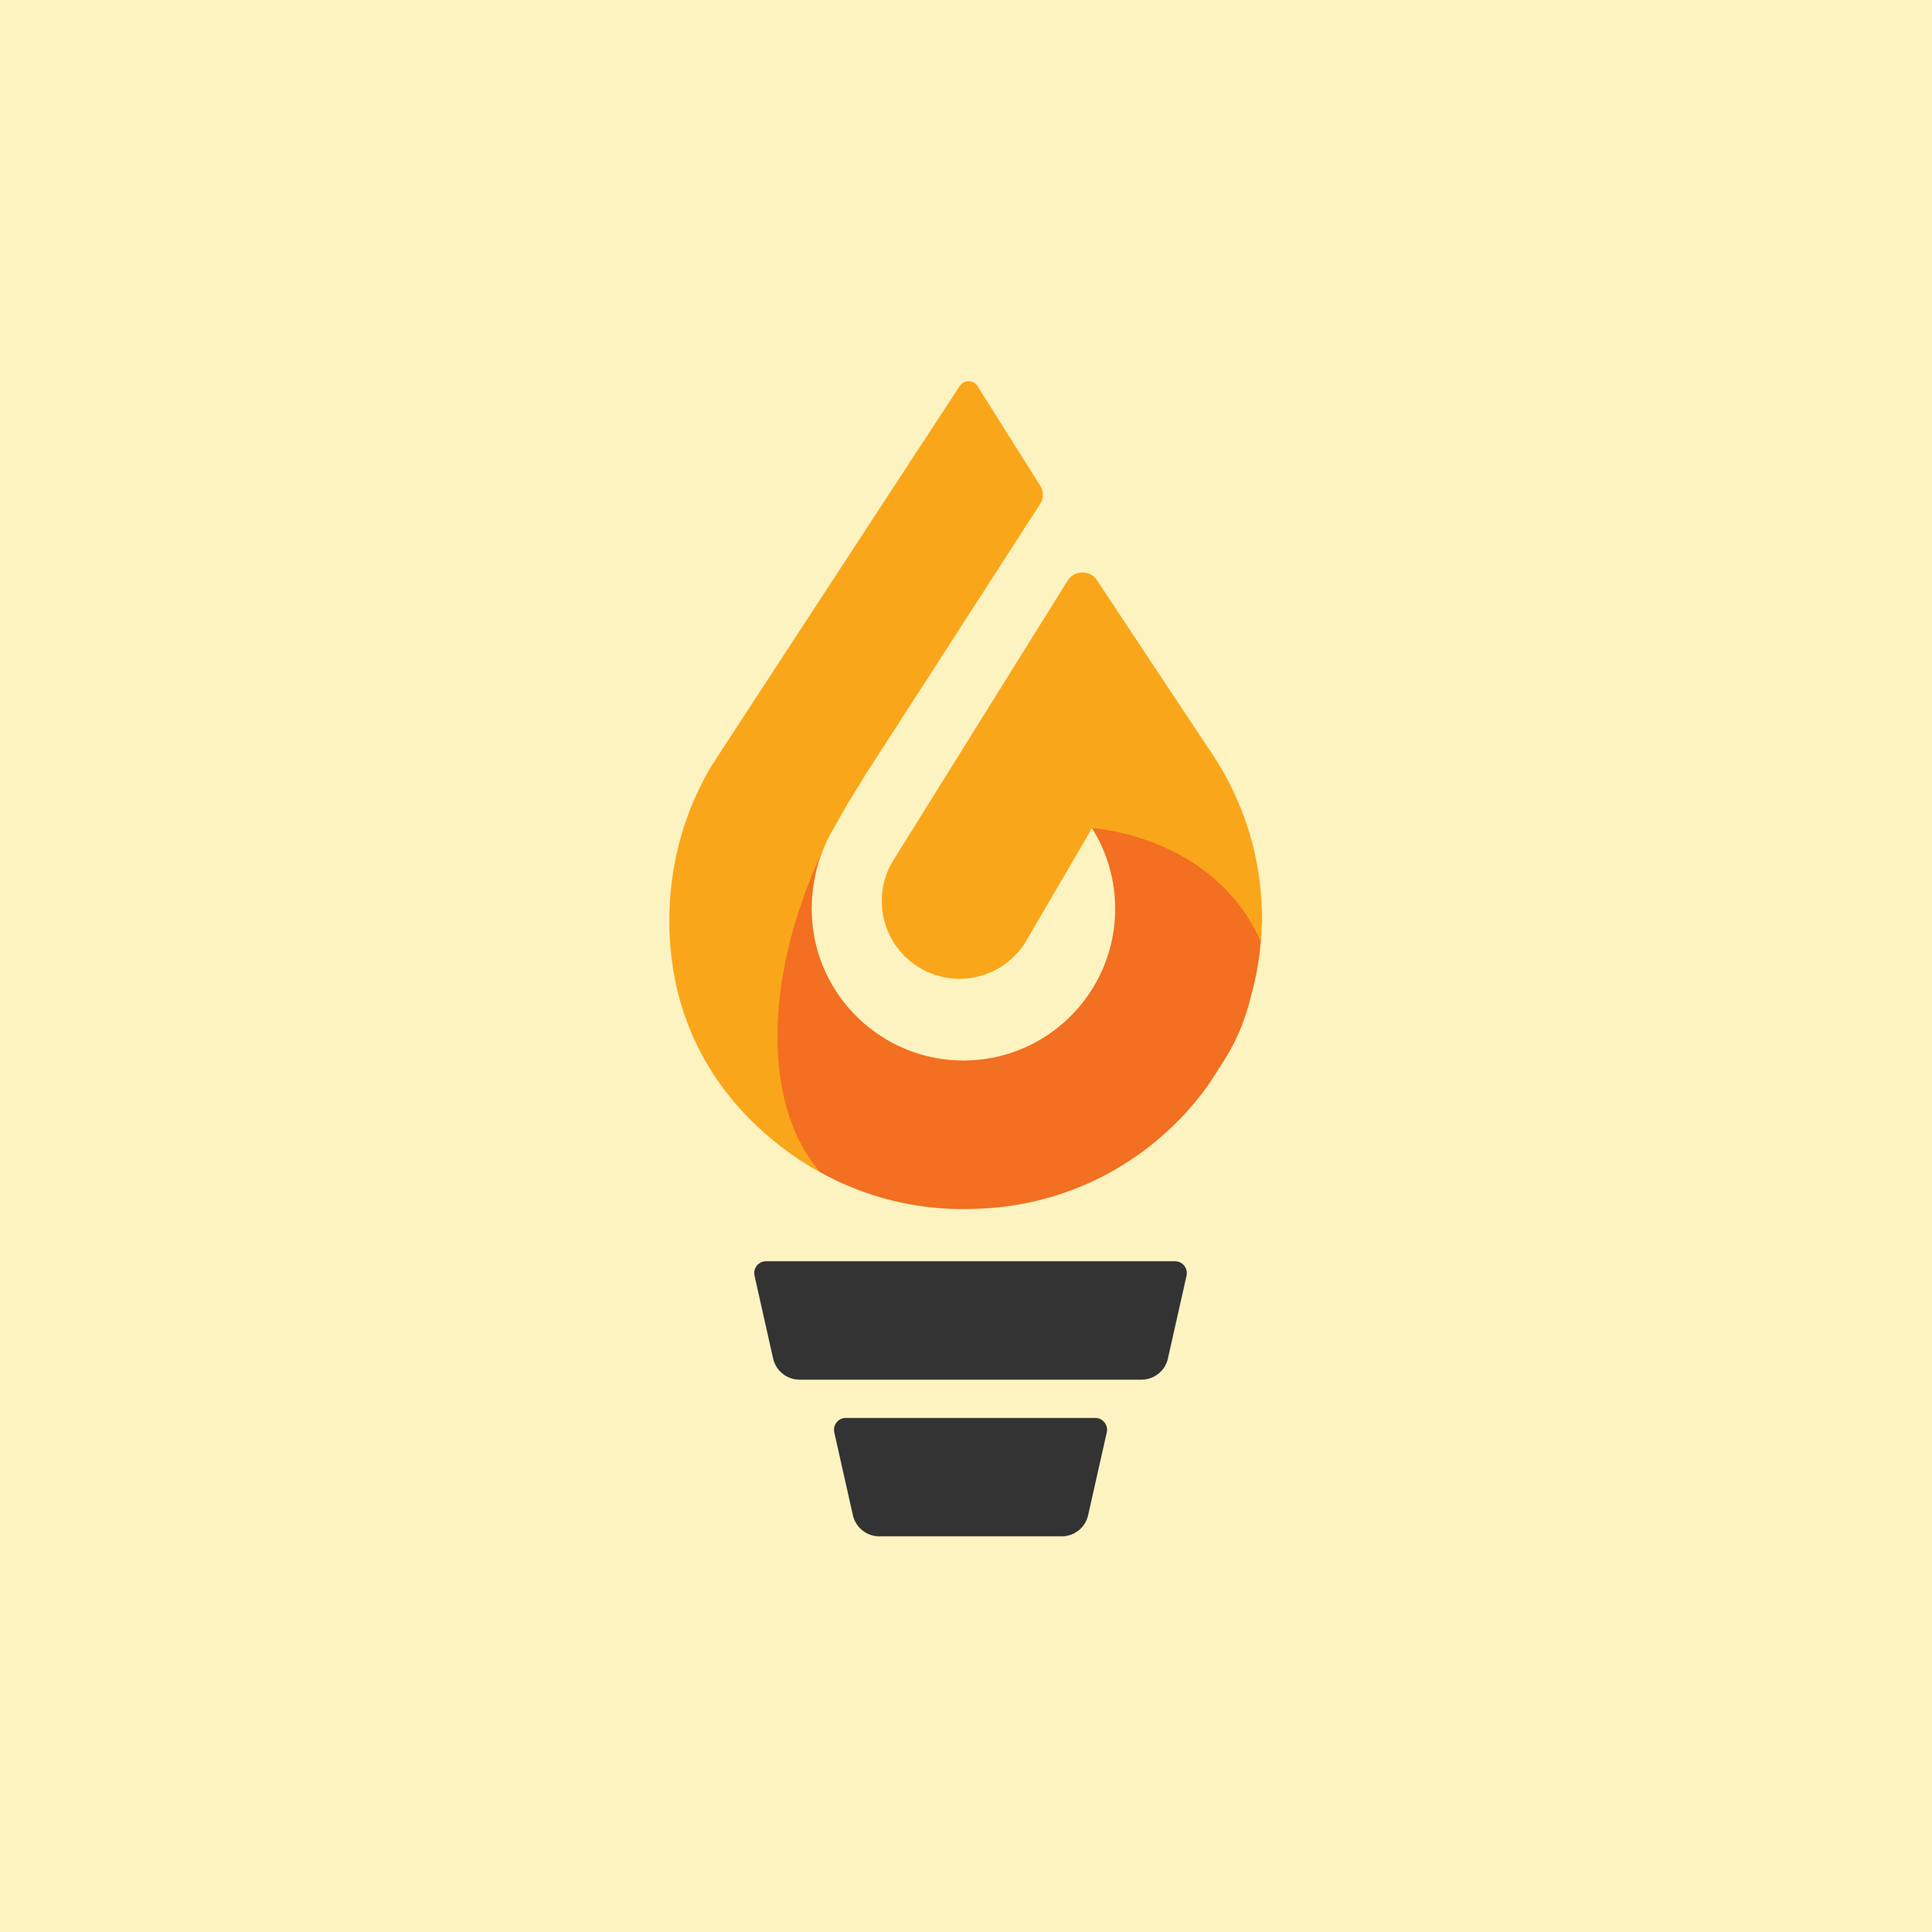 GUARDIAN_FLAME_960PX-01.png